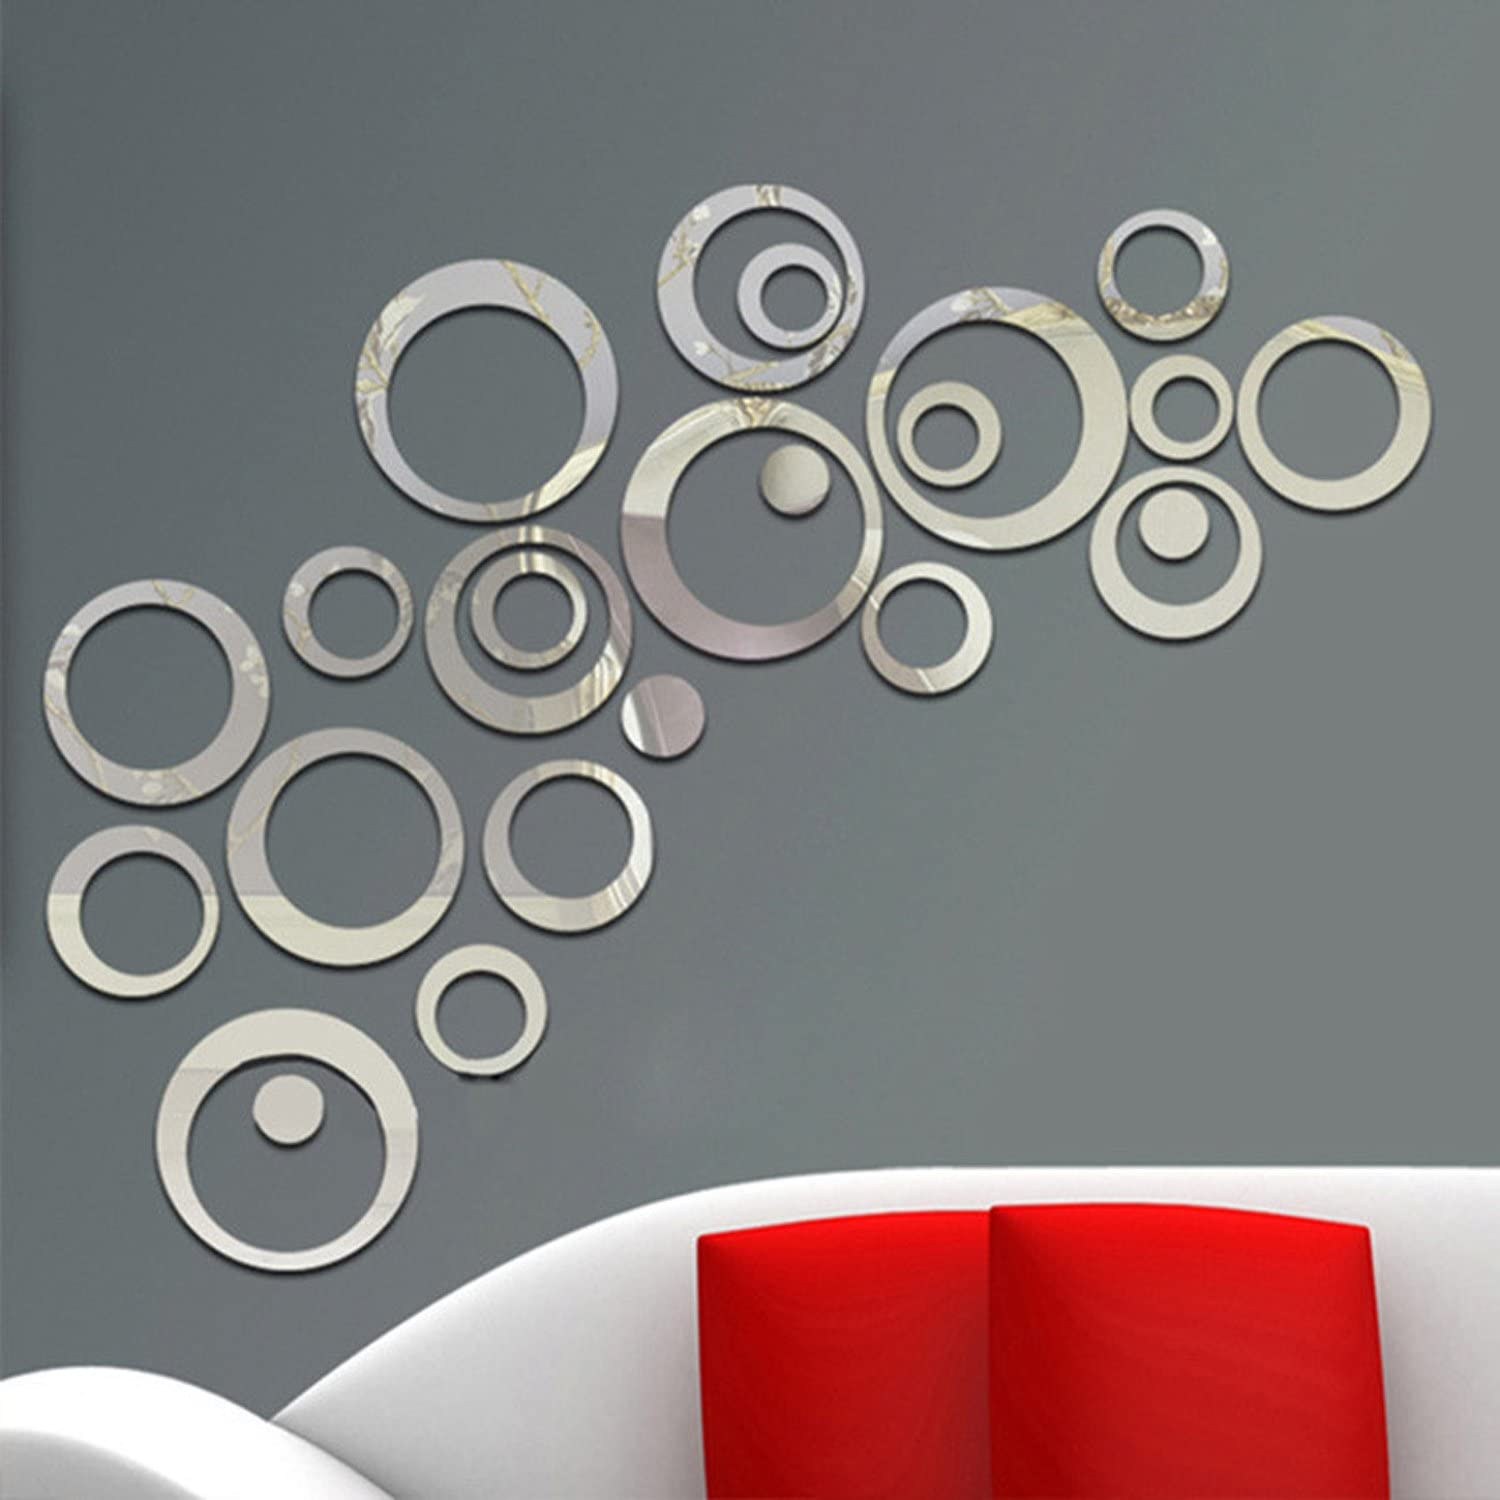 Details about  /3D Mirror Circle Art Removable Wall Sticker Acrylic Mural Decal Home Room Decor